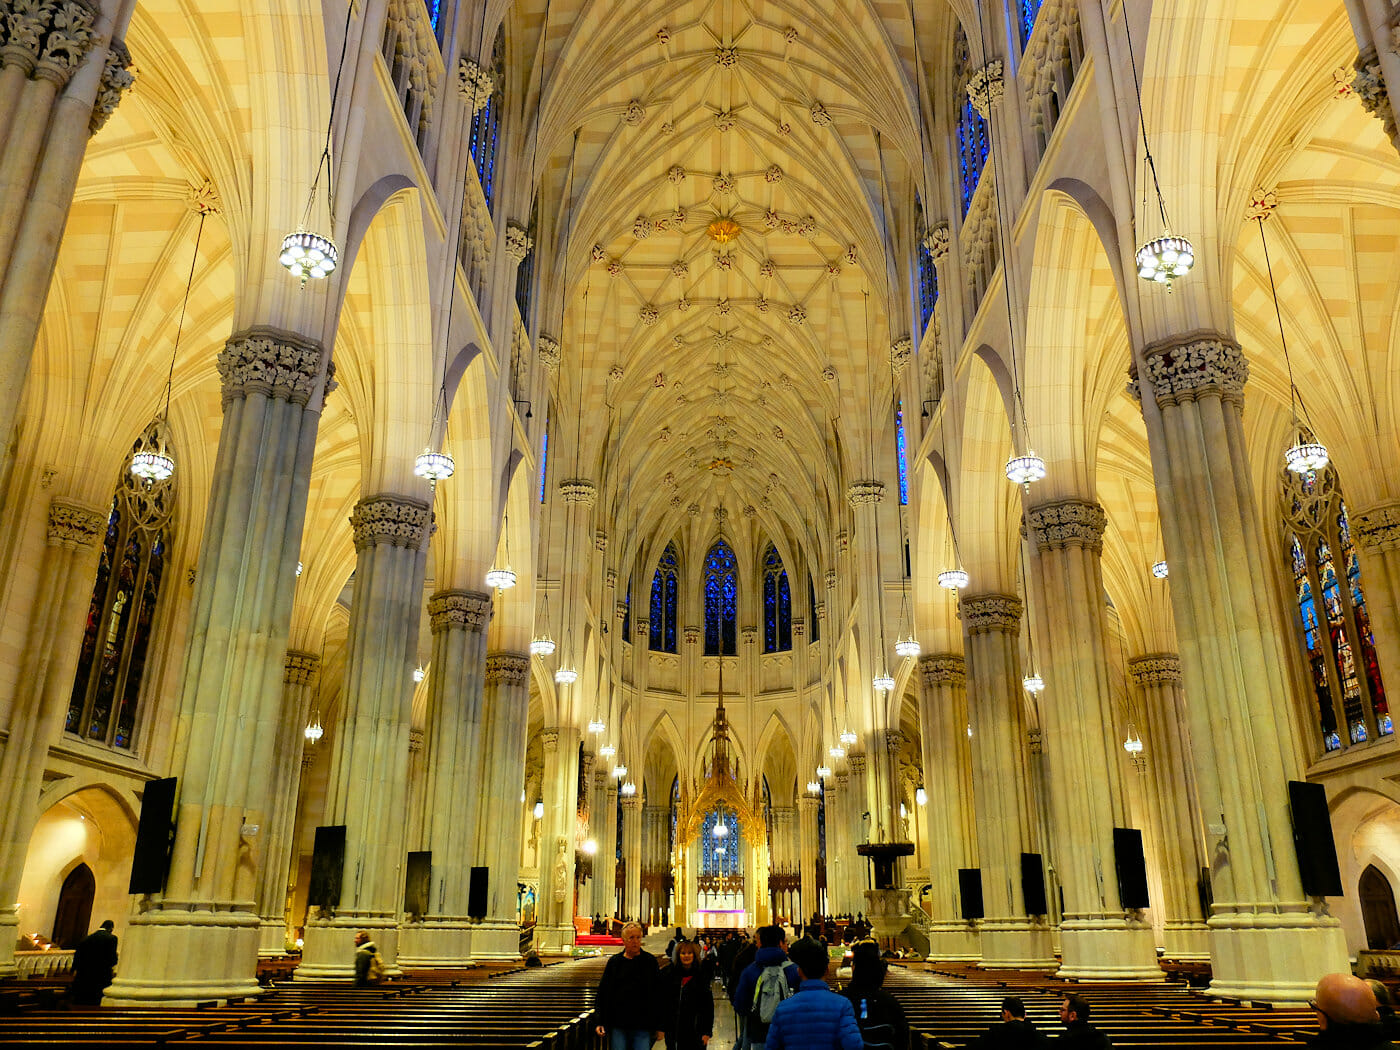 St. Patrick's Cathedral in New York - Impressive Architecture